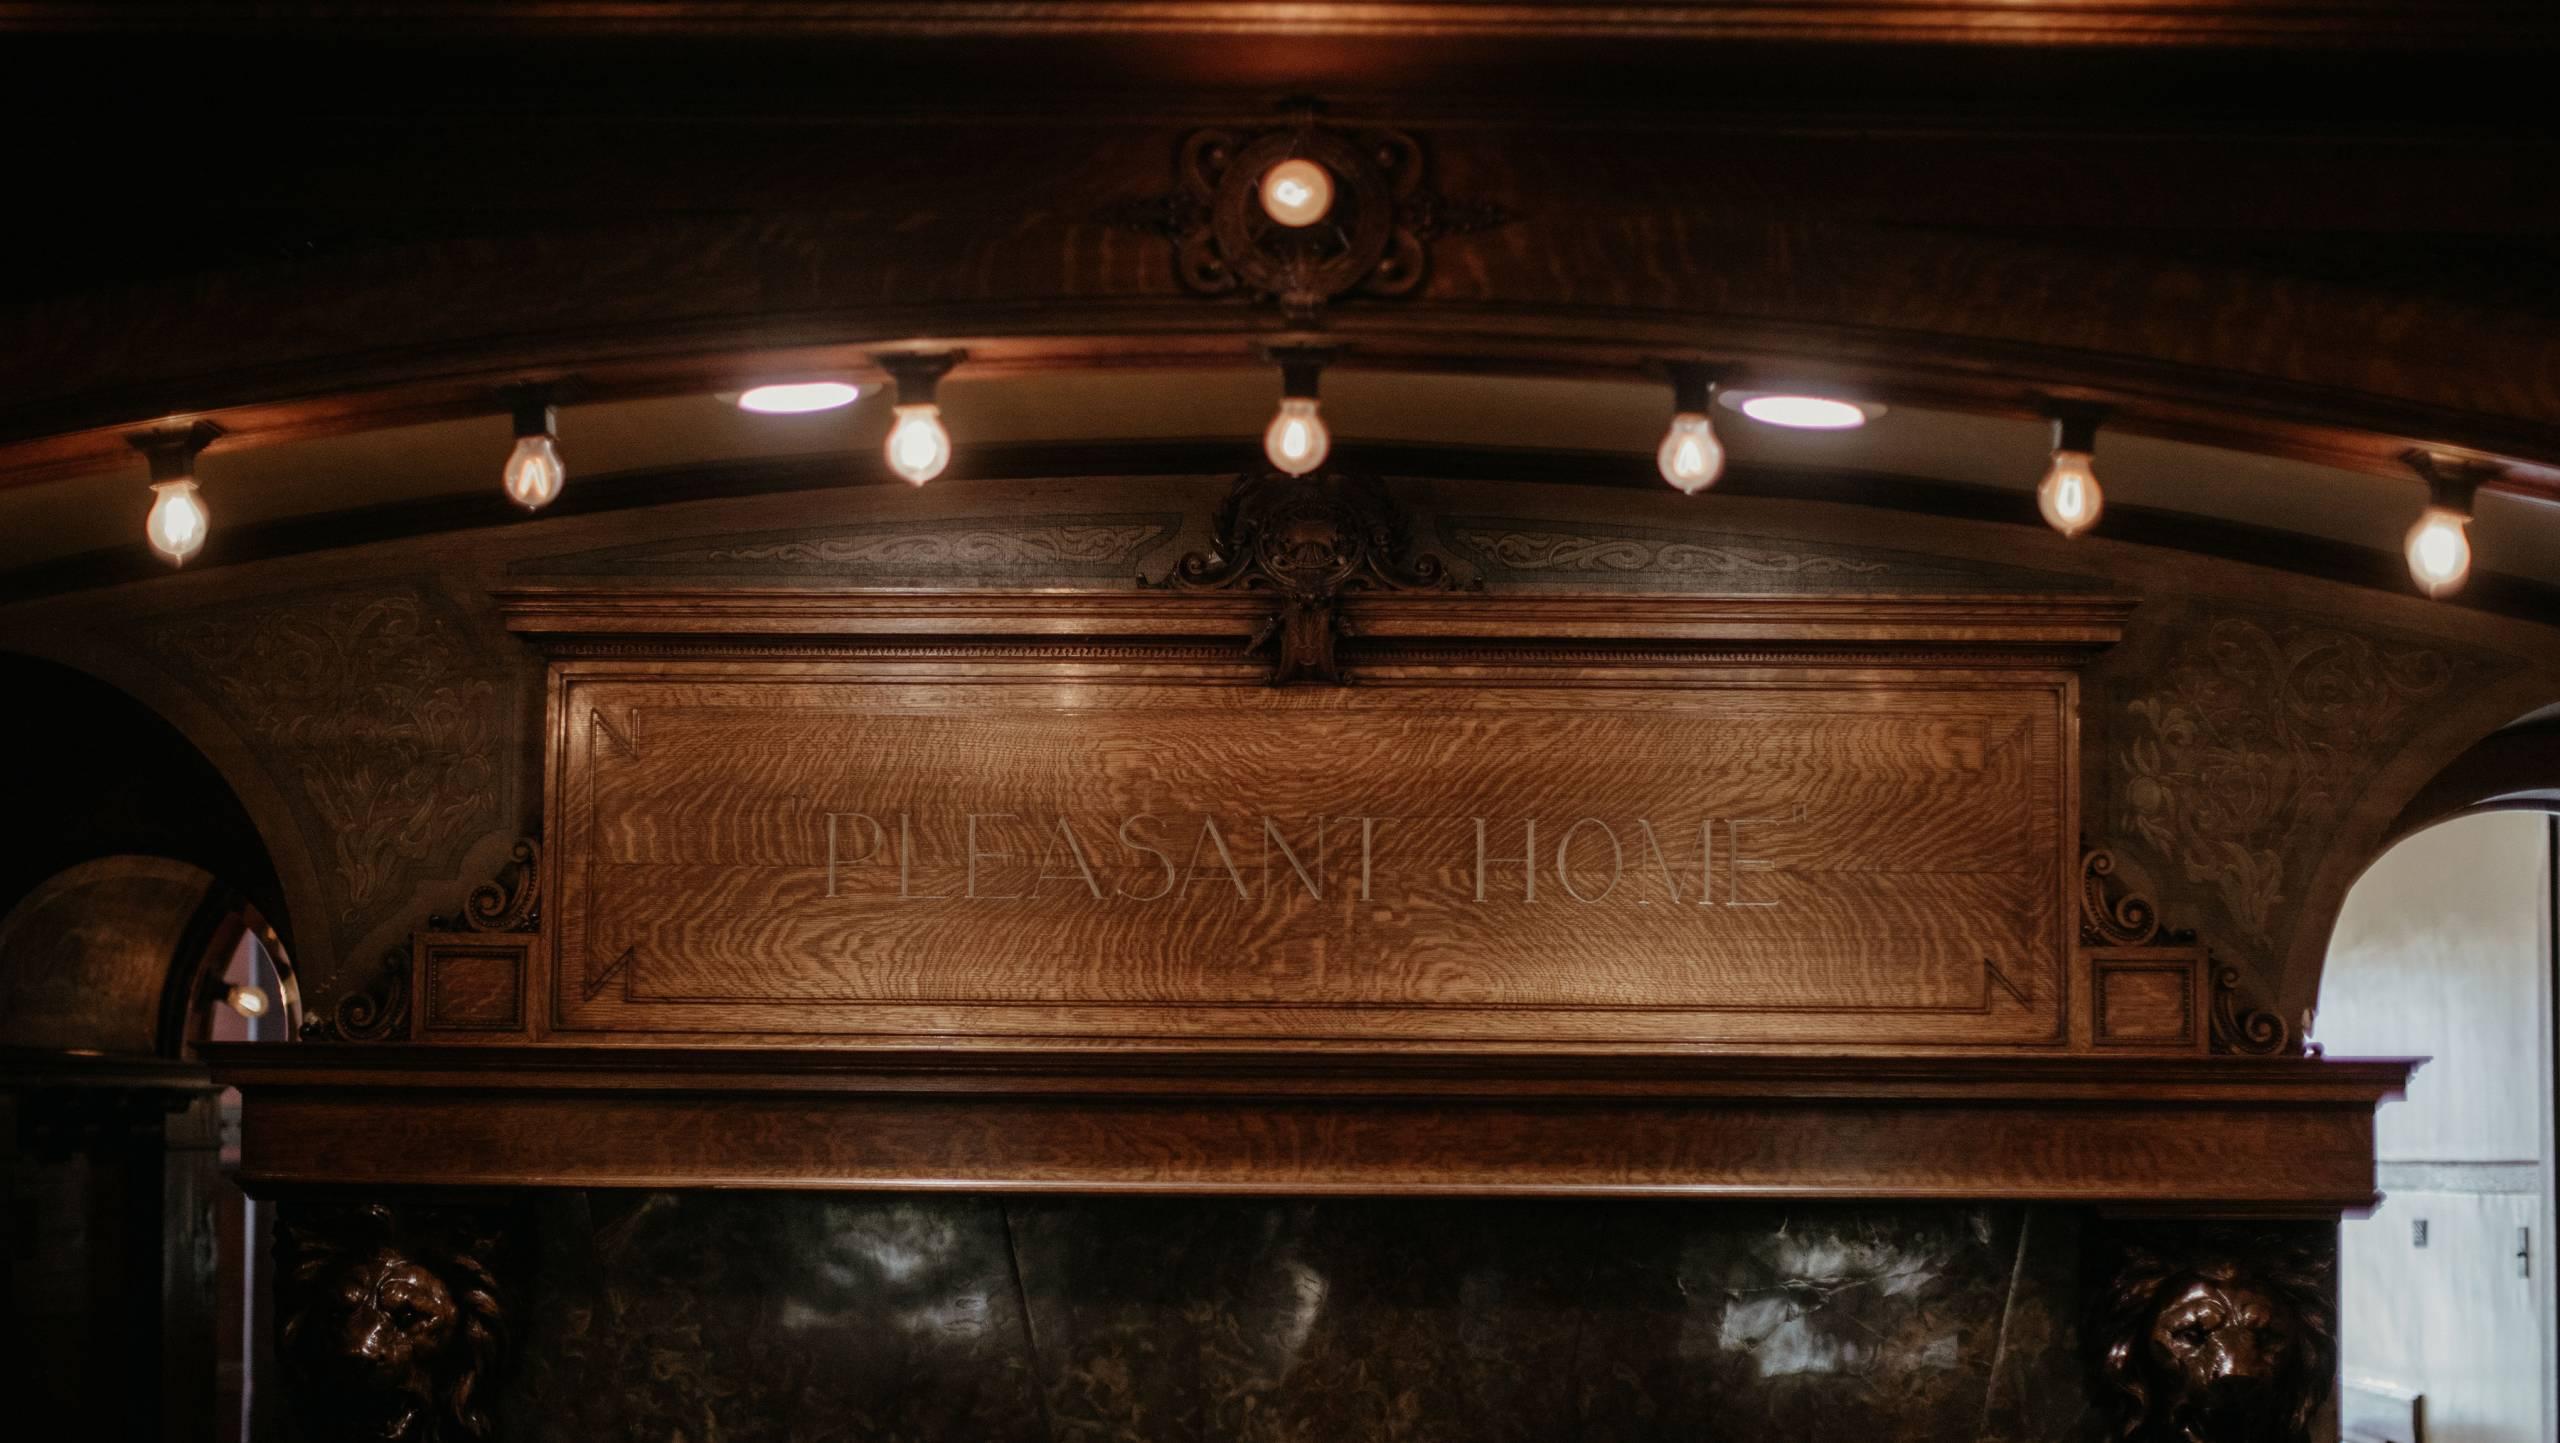 Pleasant Home Carved Fireplace Mantle in the Great Hall